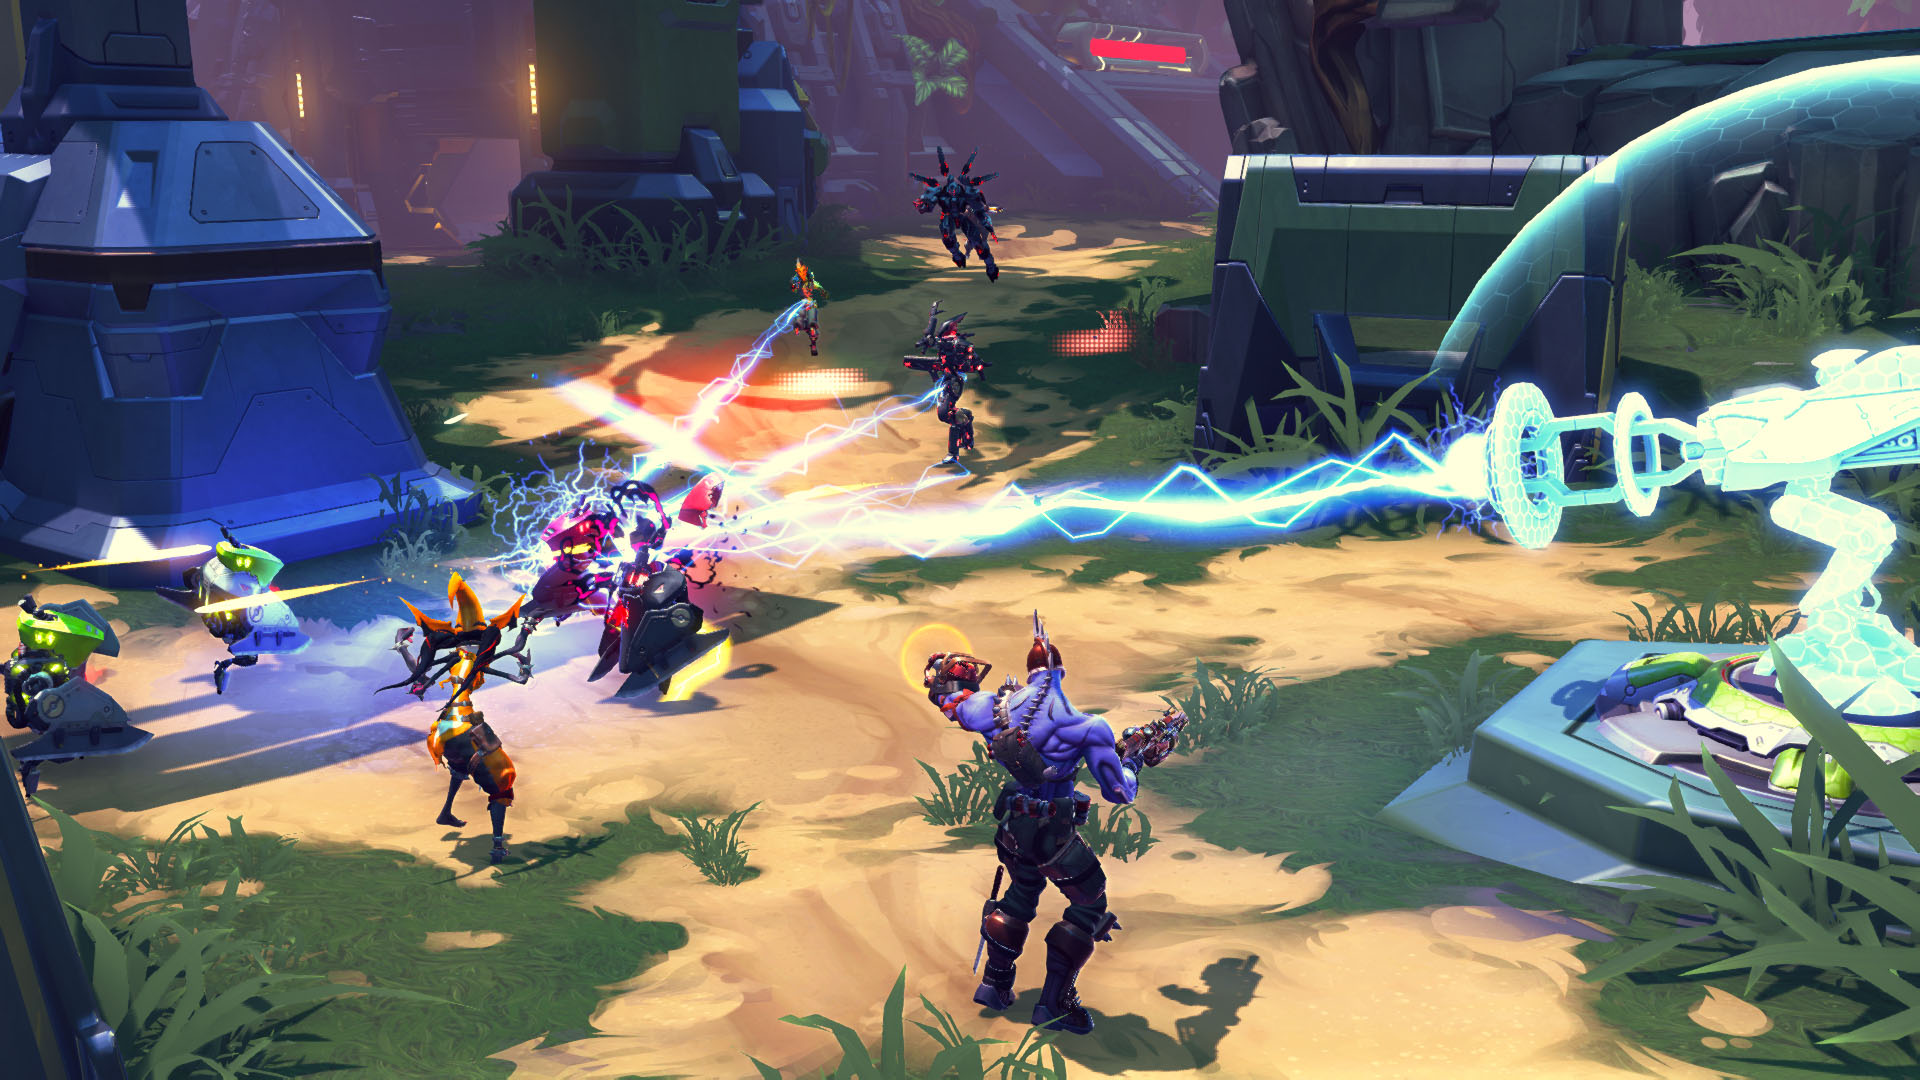 Battleborn_Incursion_Shock-Turret_01